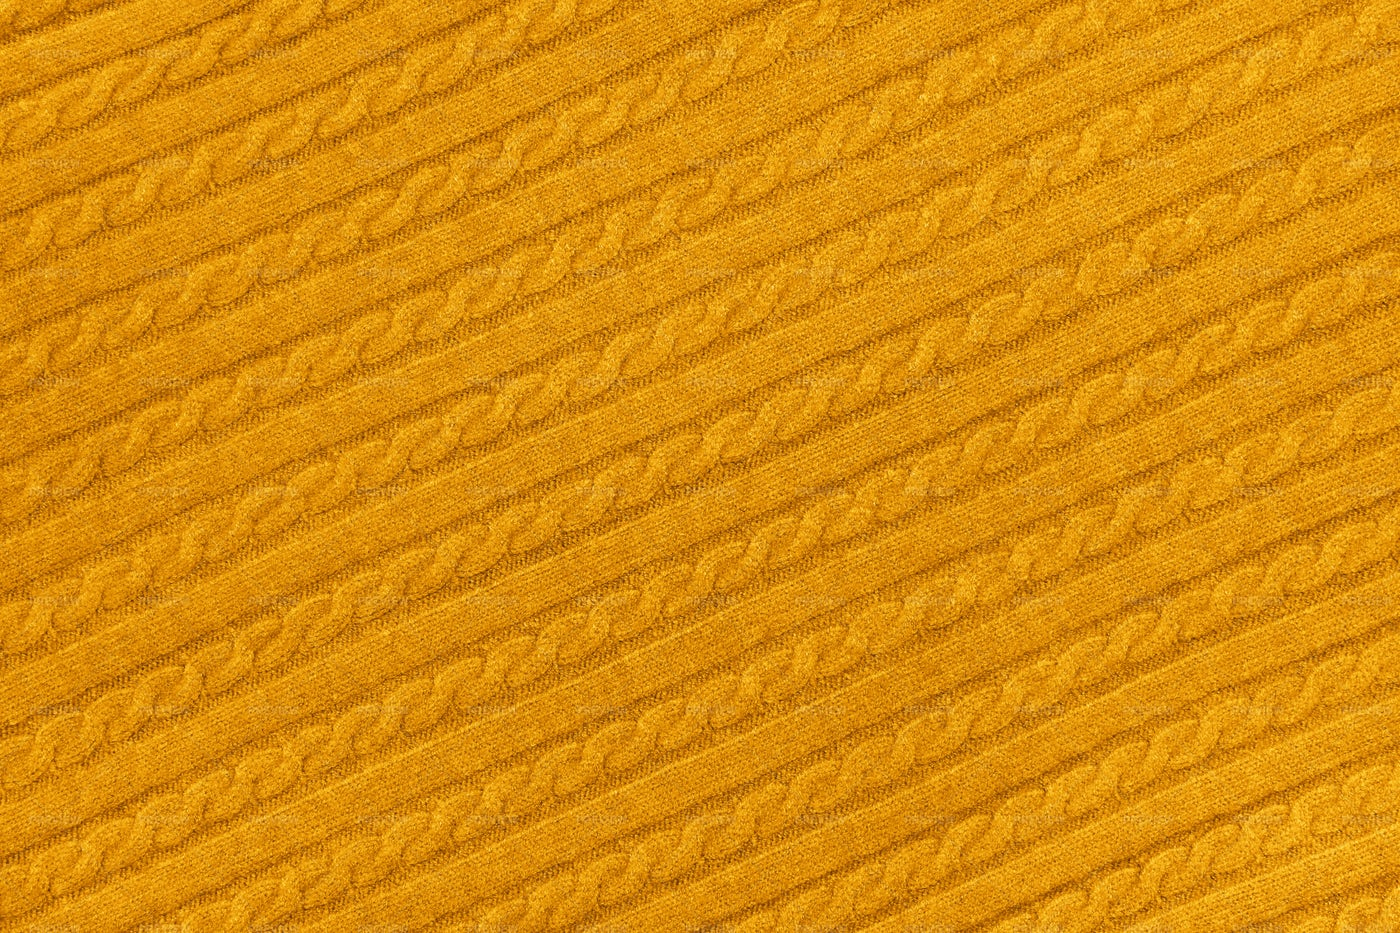 Yellow Knitted Wool Fabric: Stock Photos